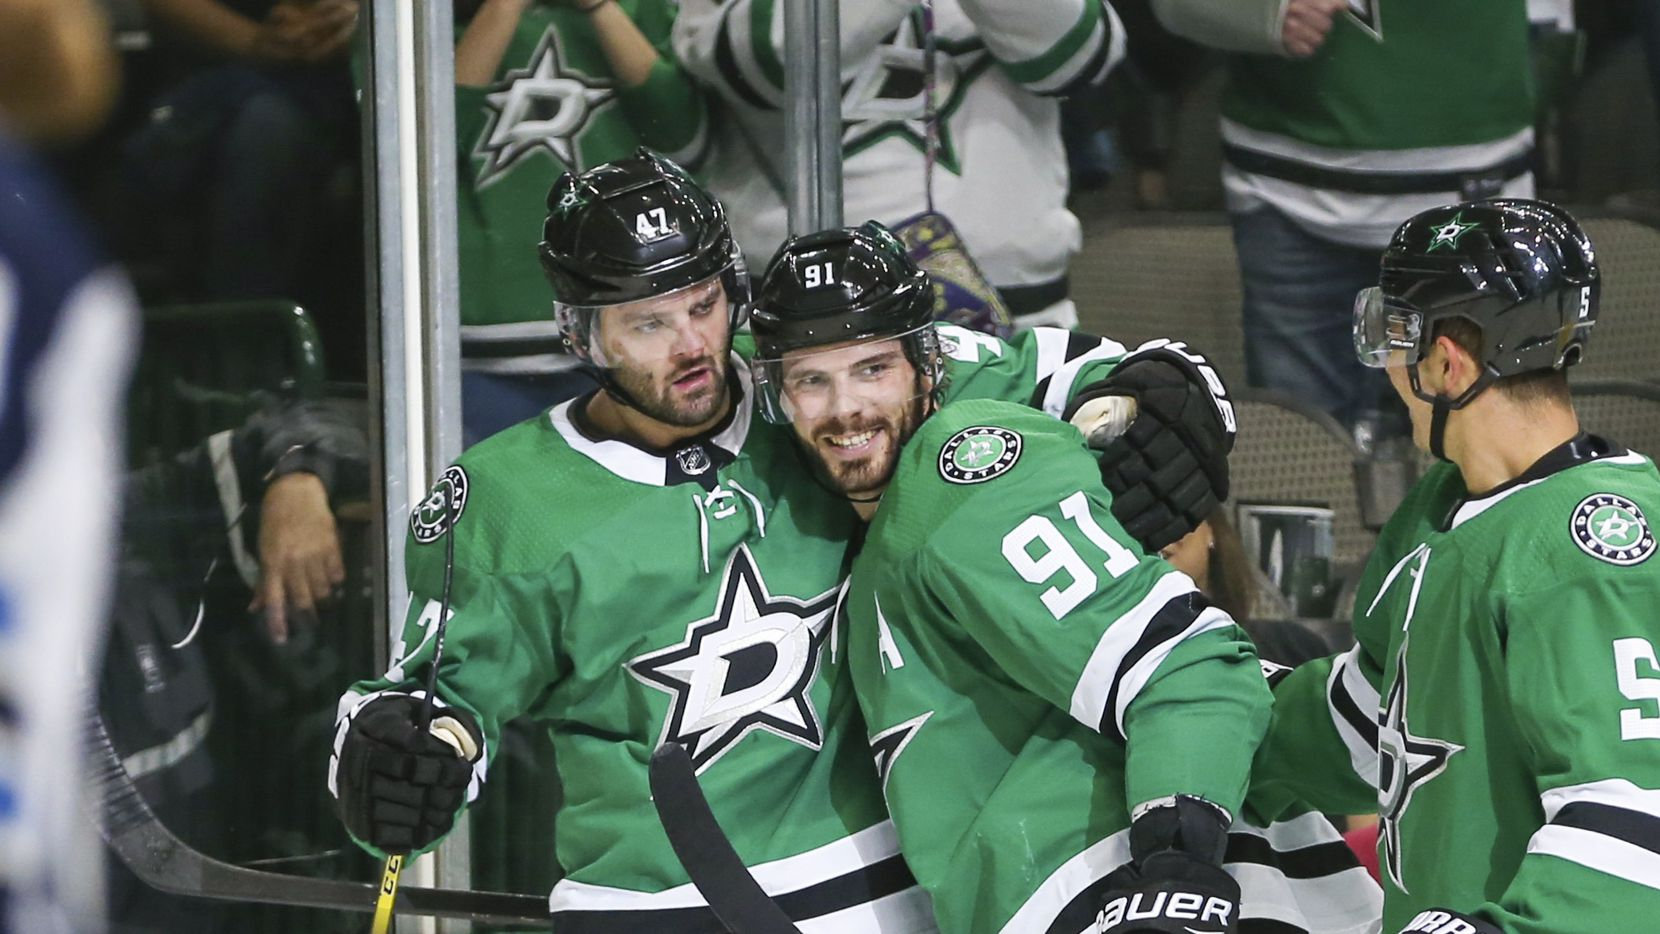 Dallas Stars right wing Alexander Radulov (47), center Tyler Seguin (91) and defenseman Connor Carrick (5) celebrate a goal during the first period of a game between the Dallas Stars and the Winnipeg Jets on Saturday, Oct. 6, 2018 at American Airlines Center in Dallas.